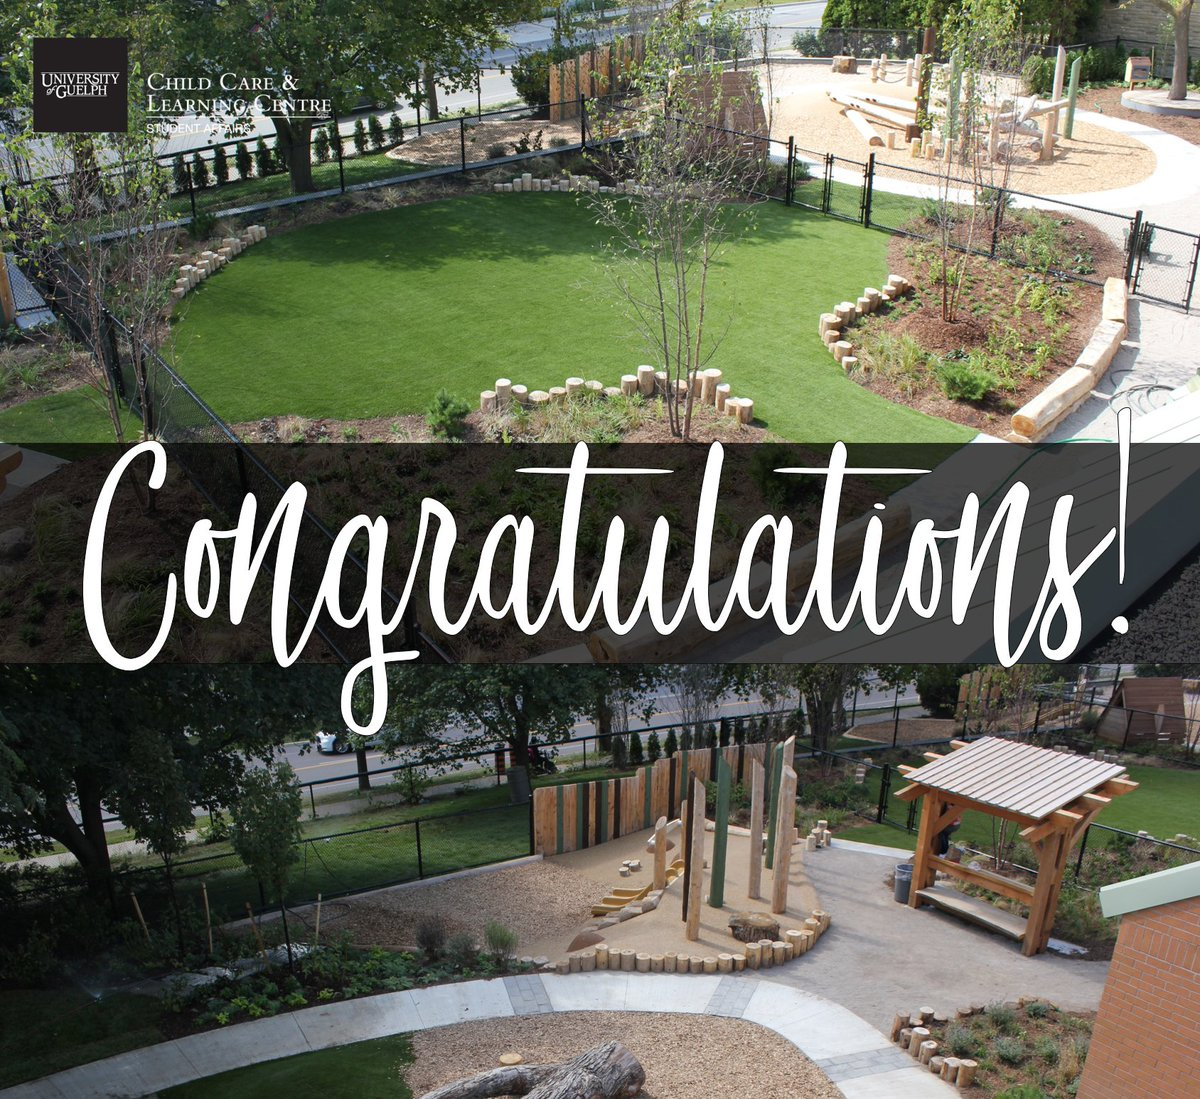 We are so grateful to have led this project with @UofG_CCLC to win a @CSLA_AAPC National award.  We hope it inspires possibilities for outdoor learning in the early years!